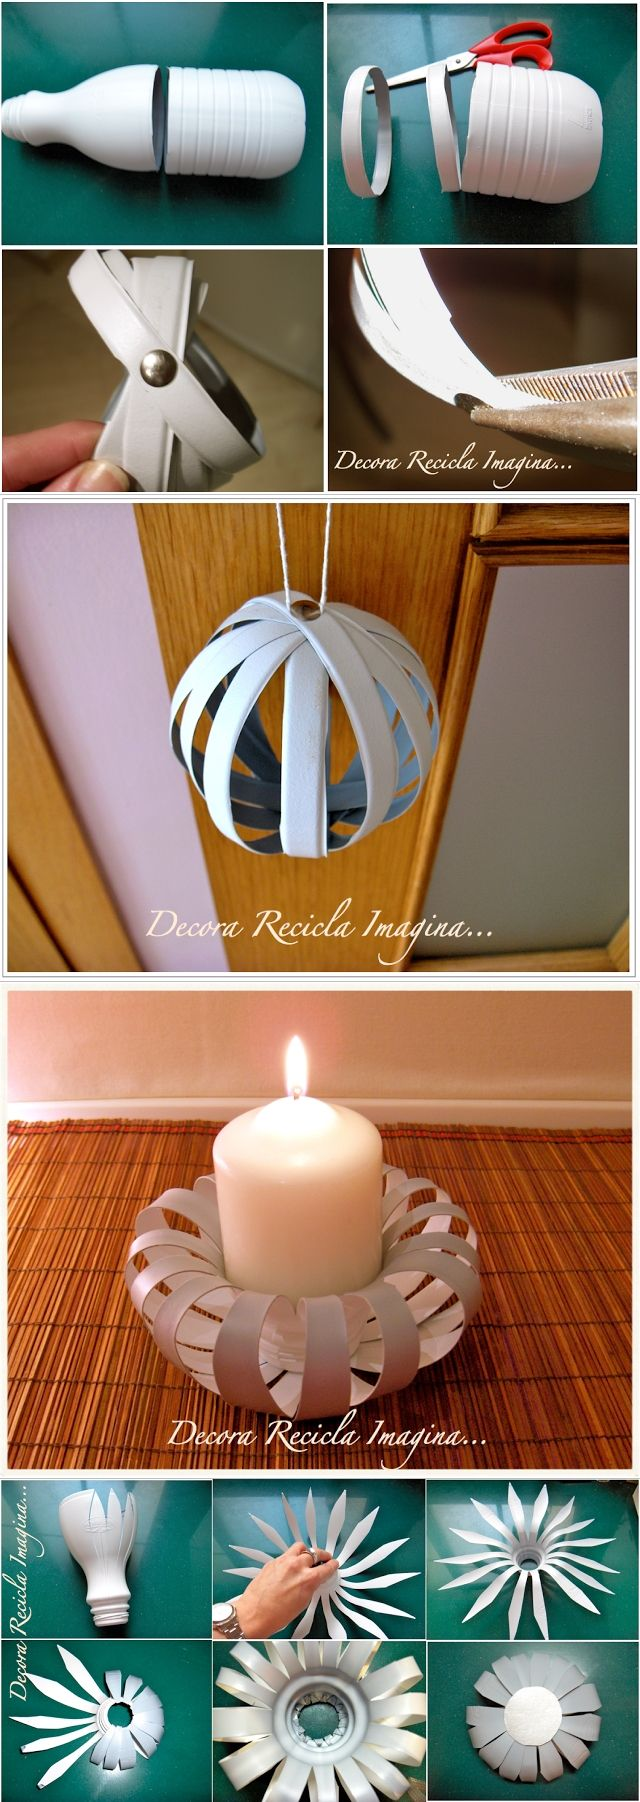 DIY Candle Holder from Plastic Bottle | www.FabArtDIY.com LIKE Us on Facebook ==> https://www.facebook.com/FabArtDIY